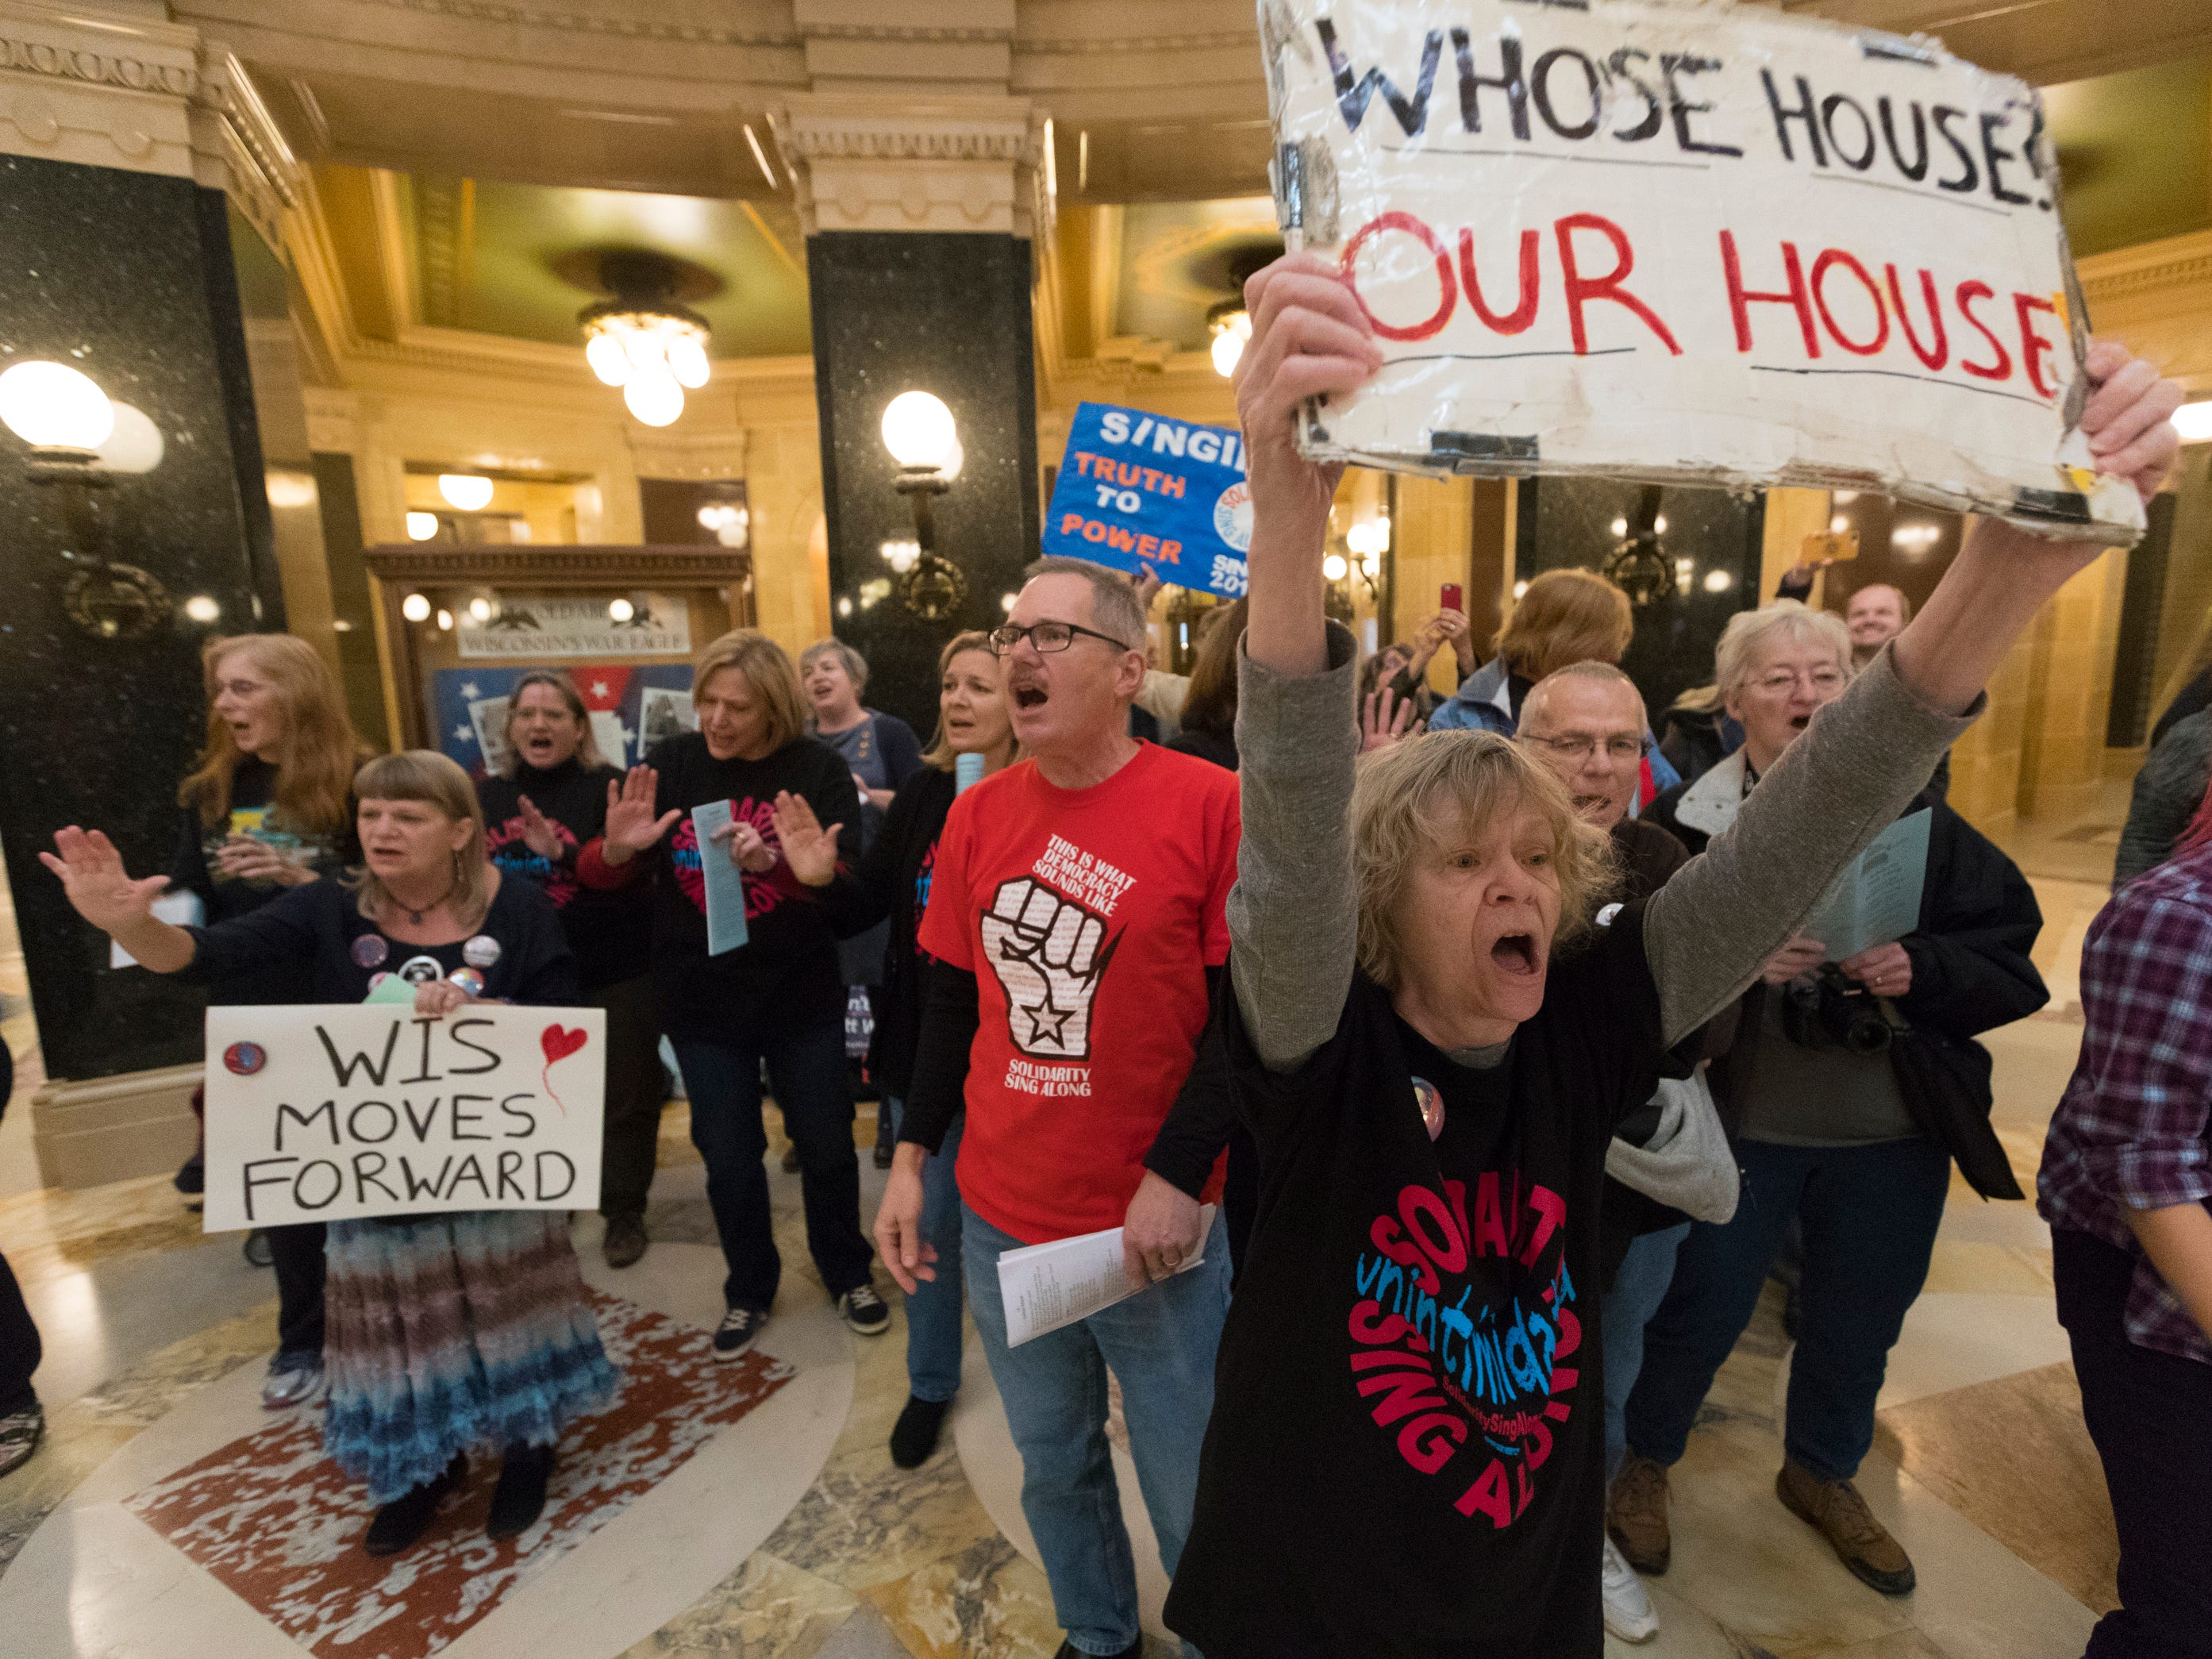 About 120 people associated with the Solidarity Singers belt out songs while celebrating the defeat of Republican Gov. Scott Walker during the lunch hour at the Capitol in Madison. Since 2011, a group of singers has gathered on most weekdays at noon to protest Walker and Republican lawmakers.